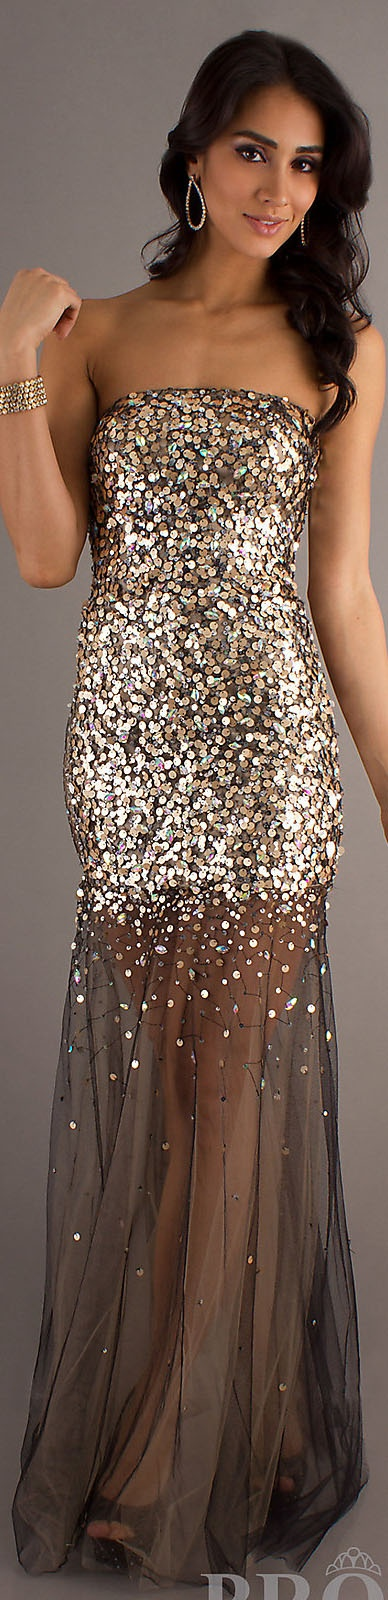 Fashion long formal dress #strapless #glitter #sexy #nude #gold